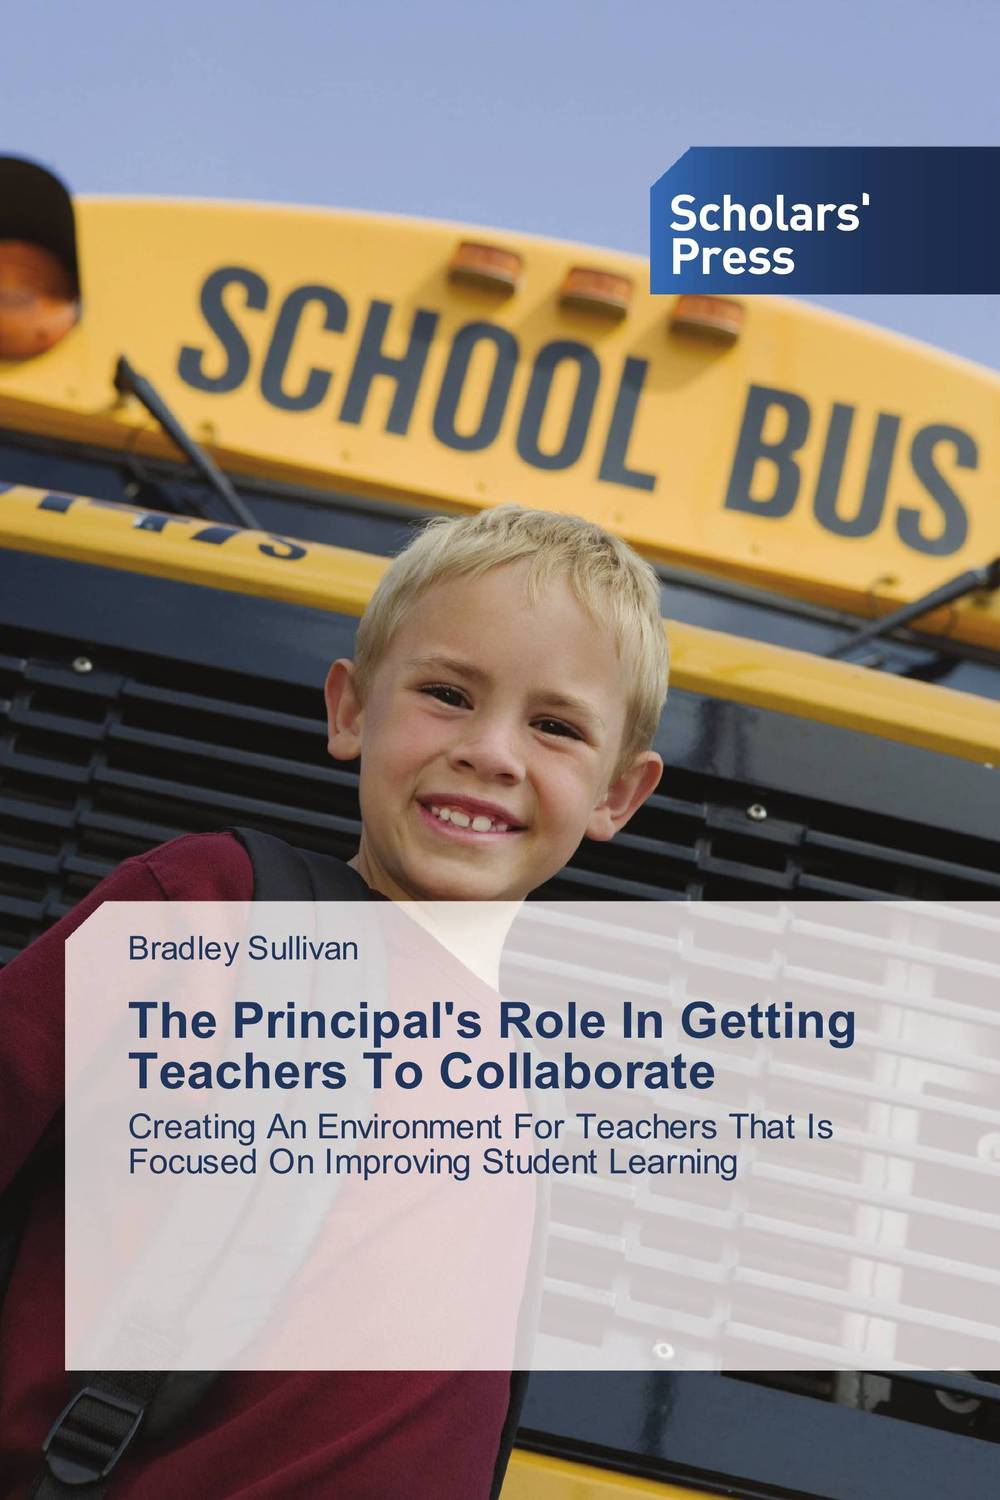 The Principal's Role In Getting Teachers To Collaborate the role of evaluation as a mechanism for advancing principal practice